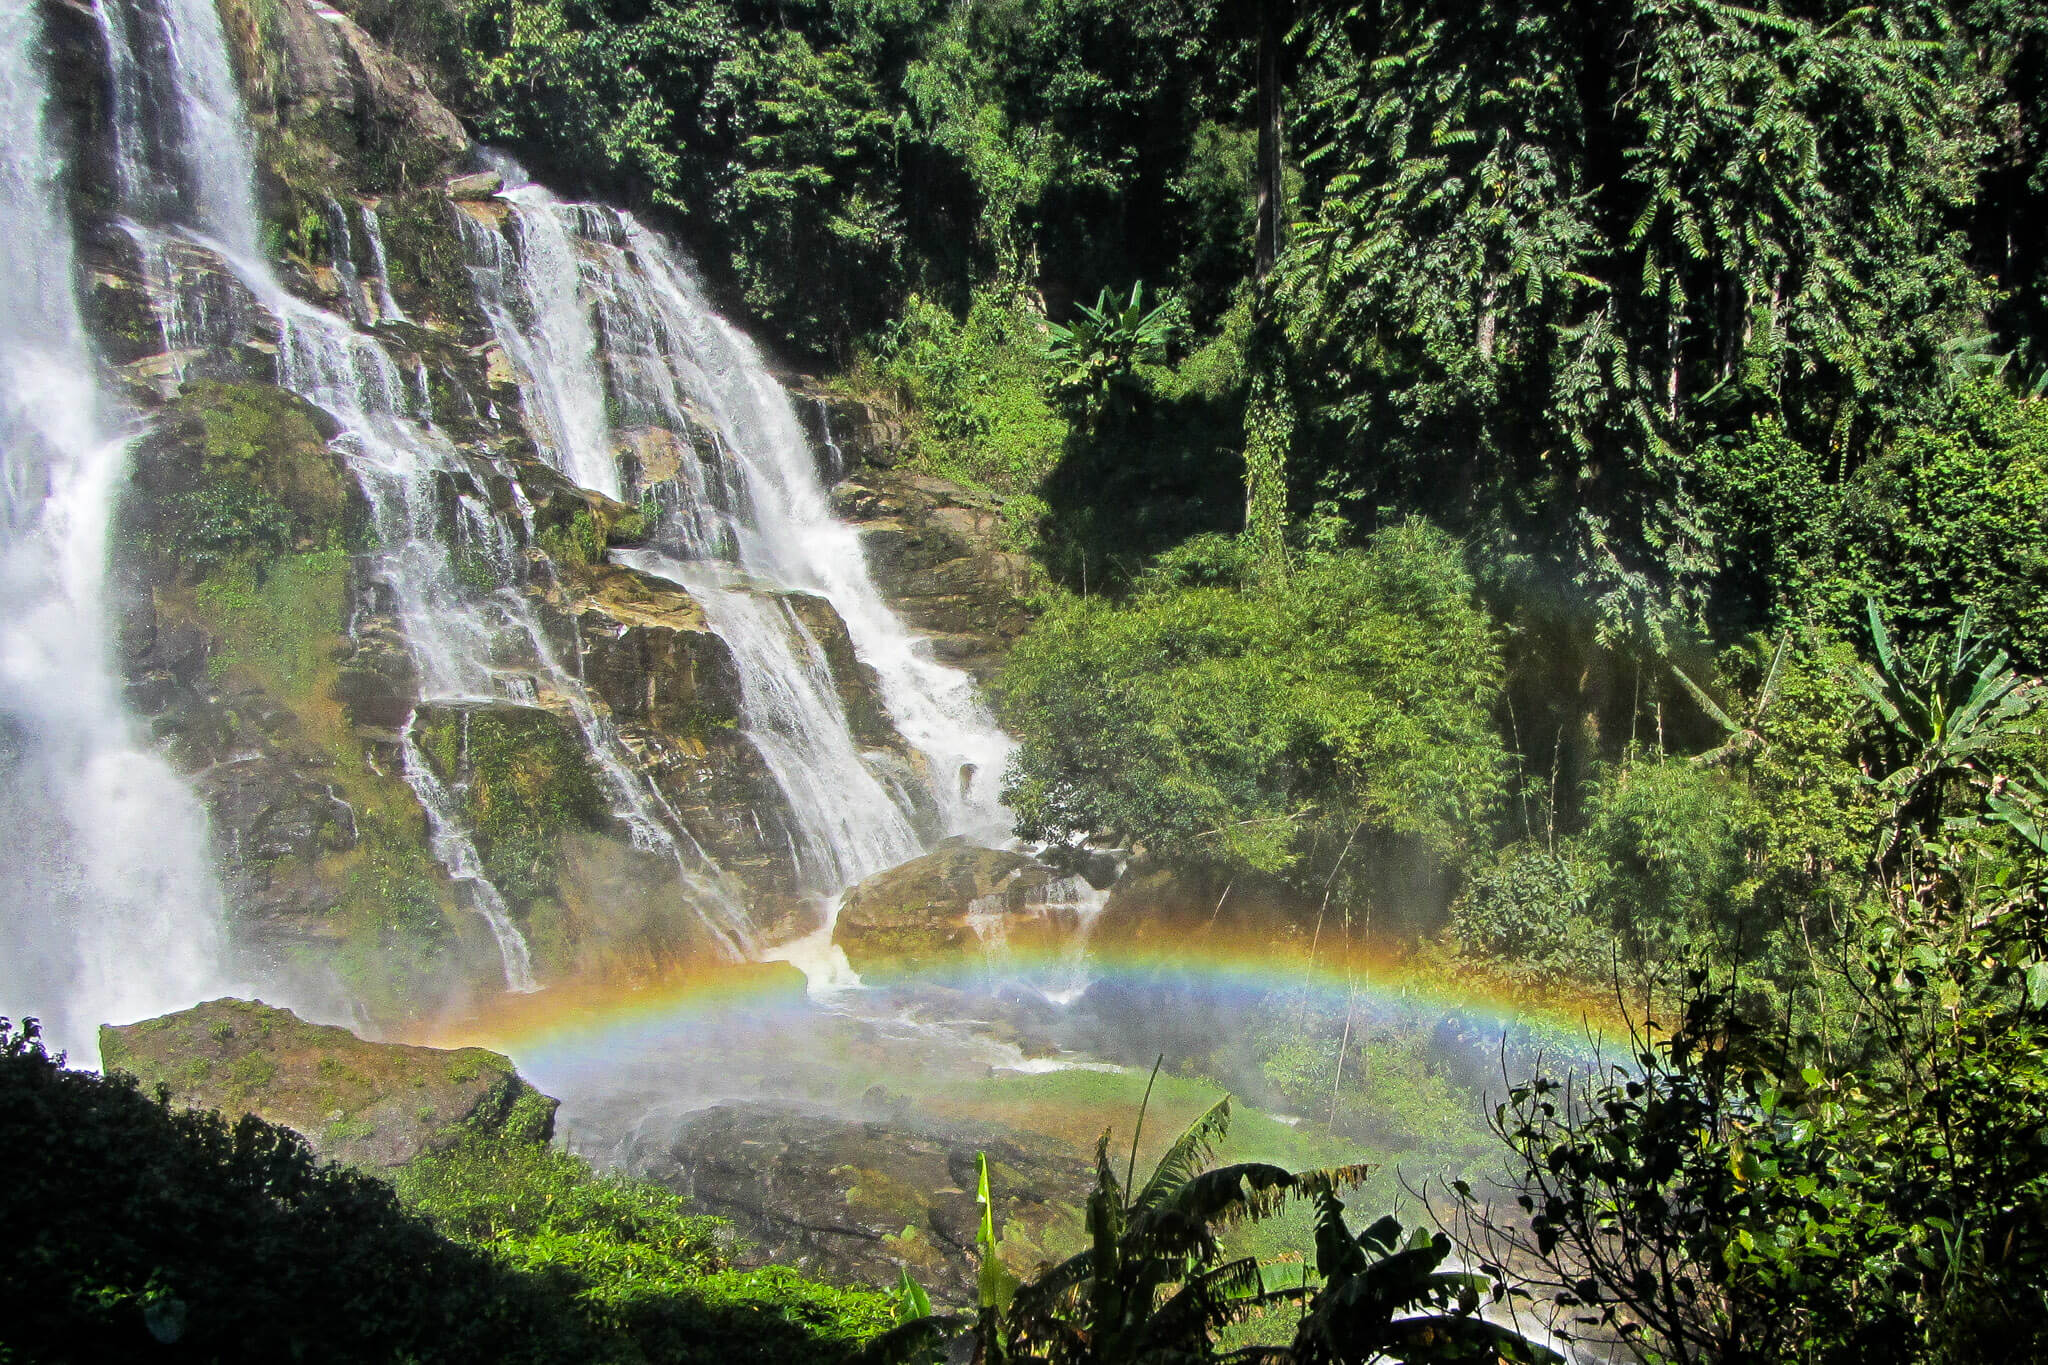 Waterfalls of Doi Inthanon outside of Chiang Mai